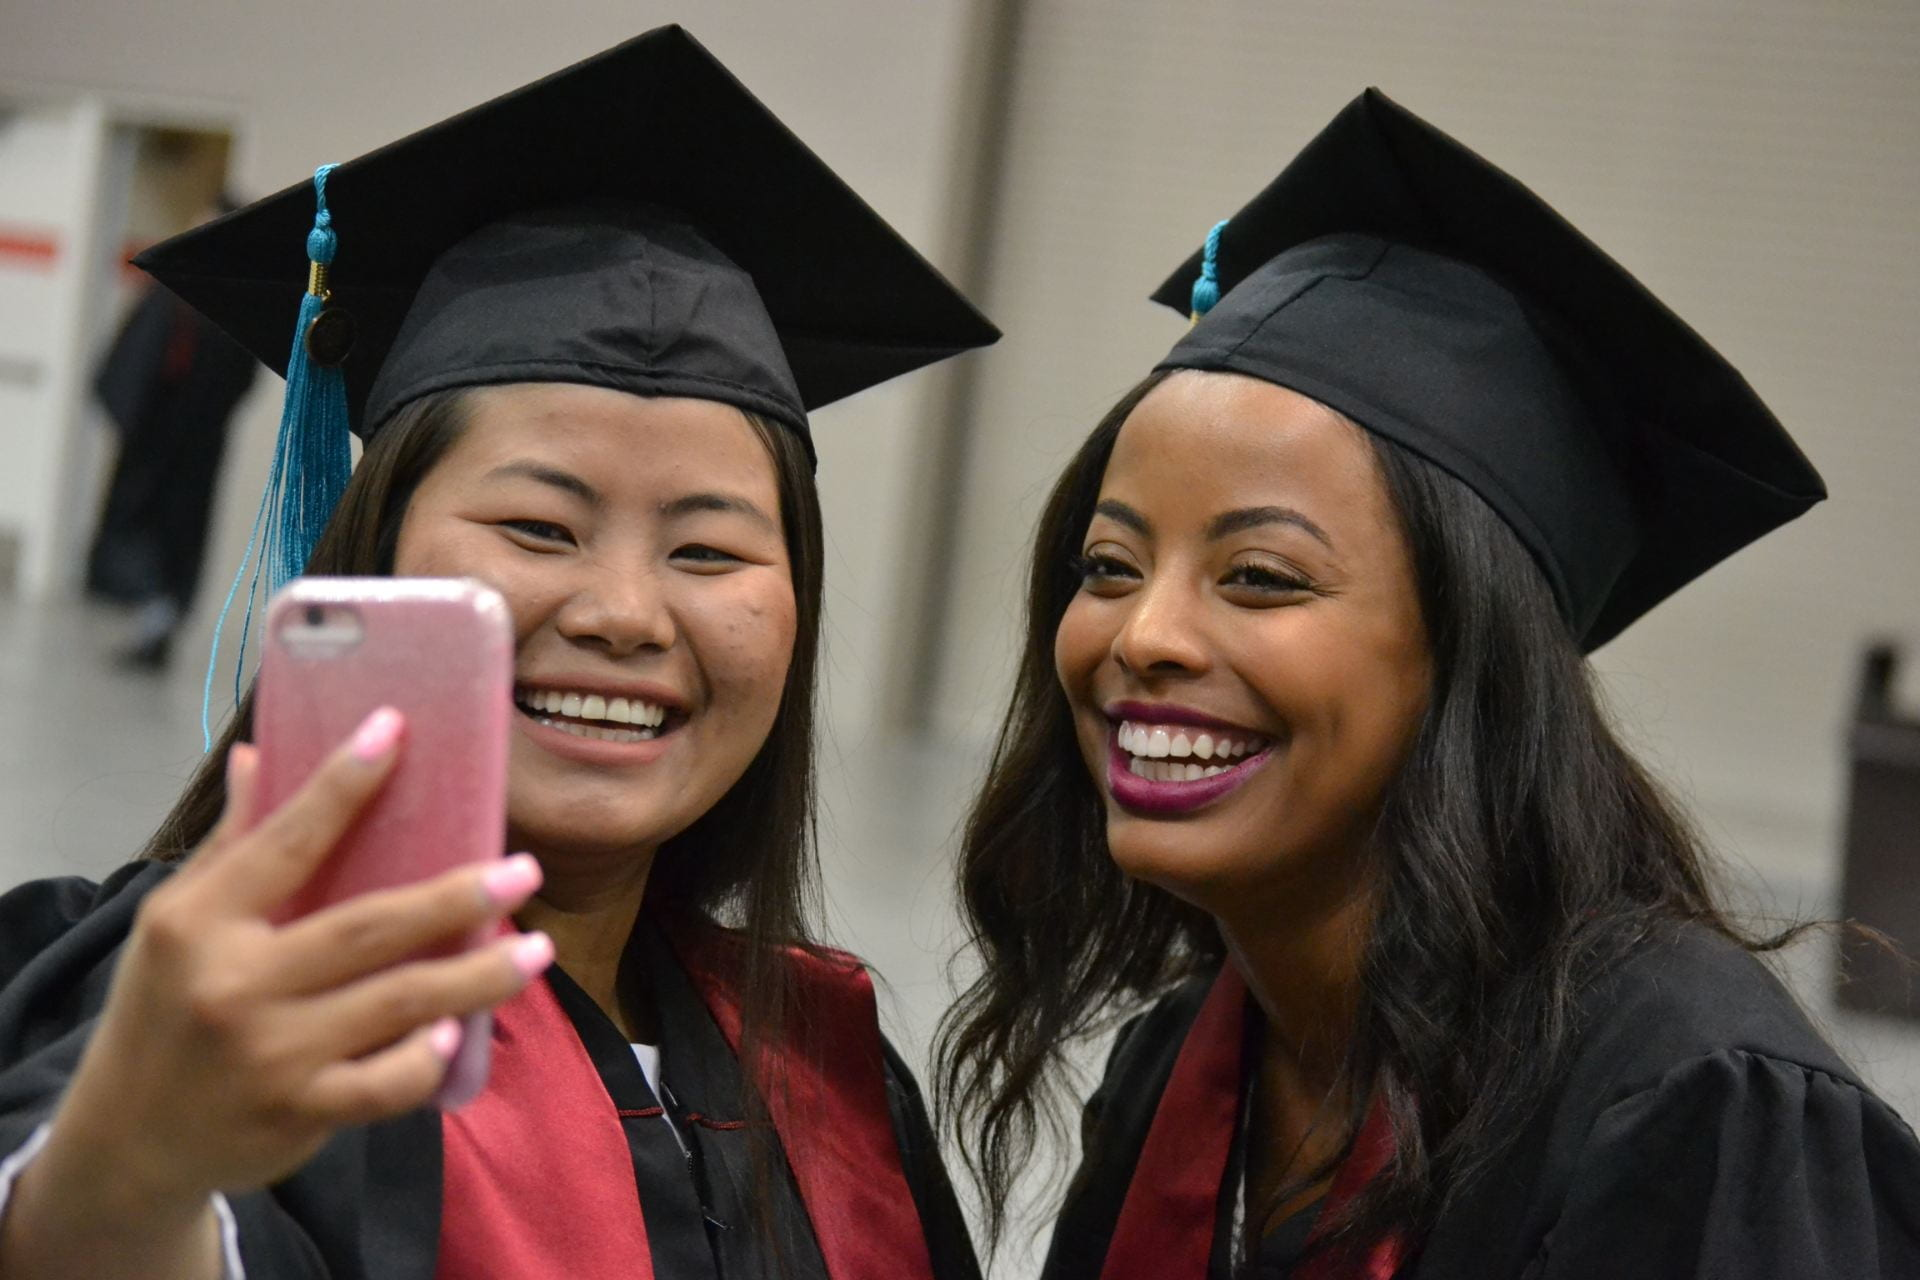 Two women in cap and gowns smile and take a picture at commencement.